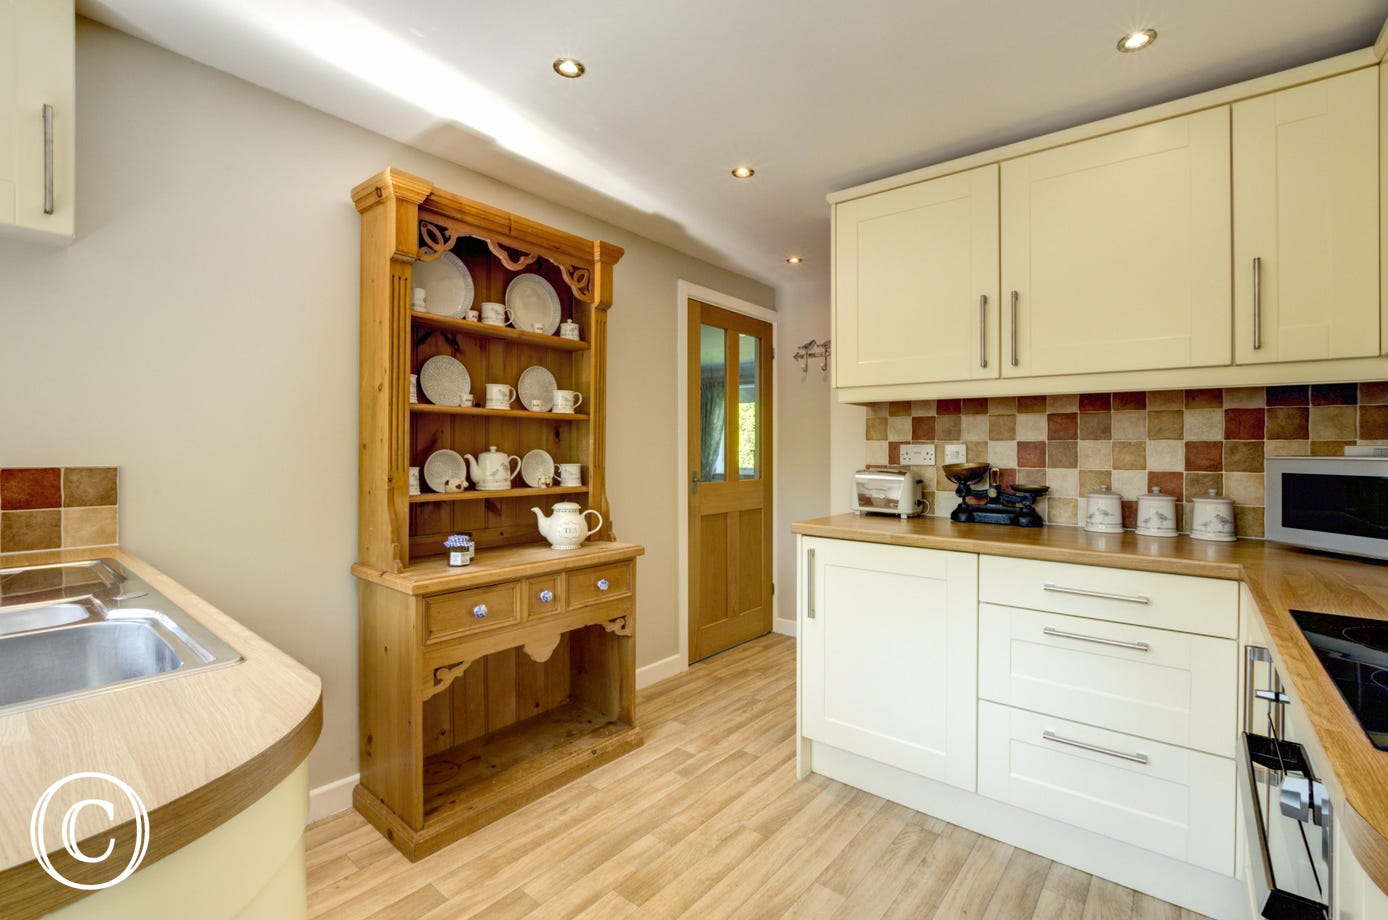 Kitchen with welsh dresser